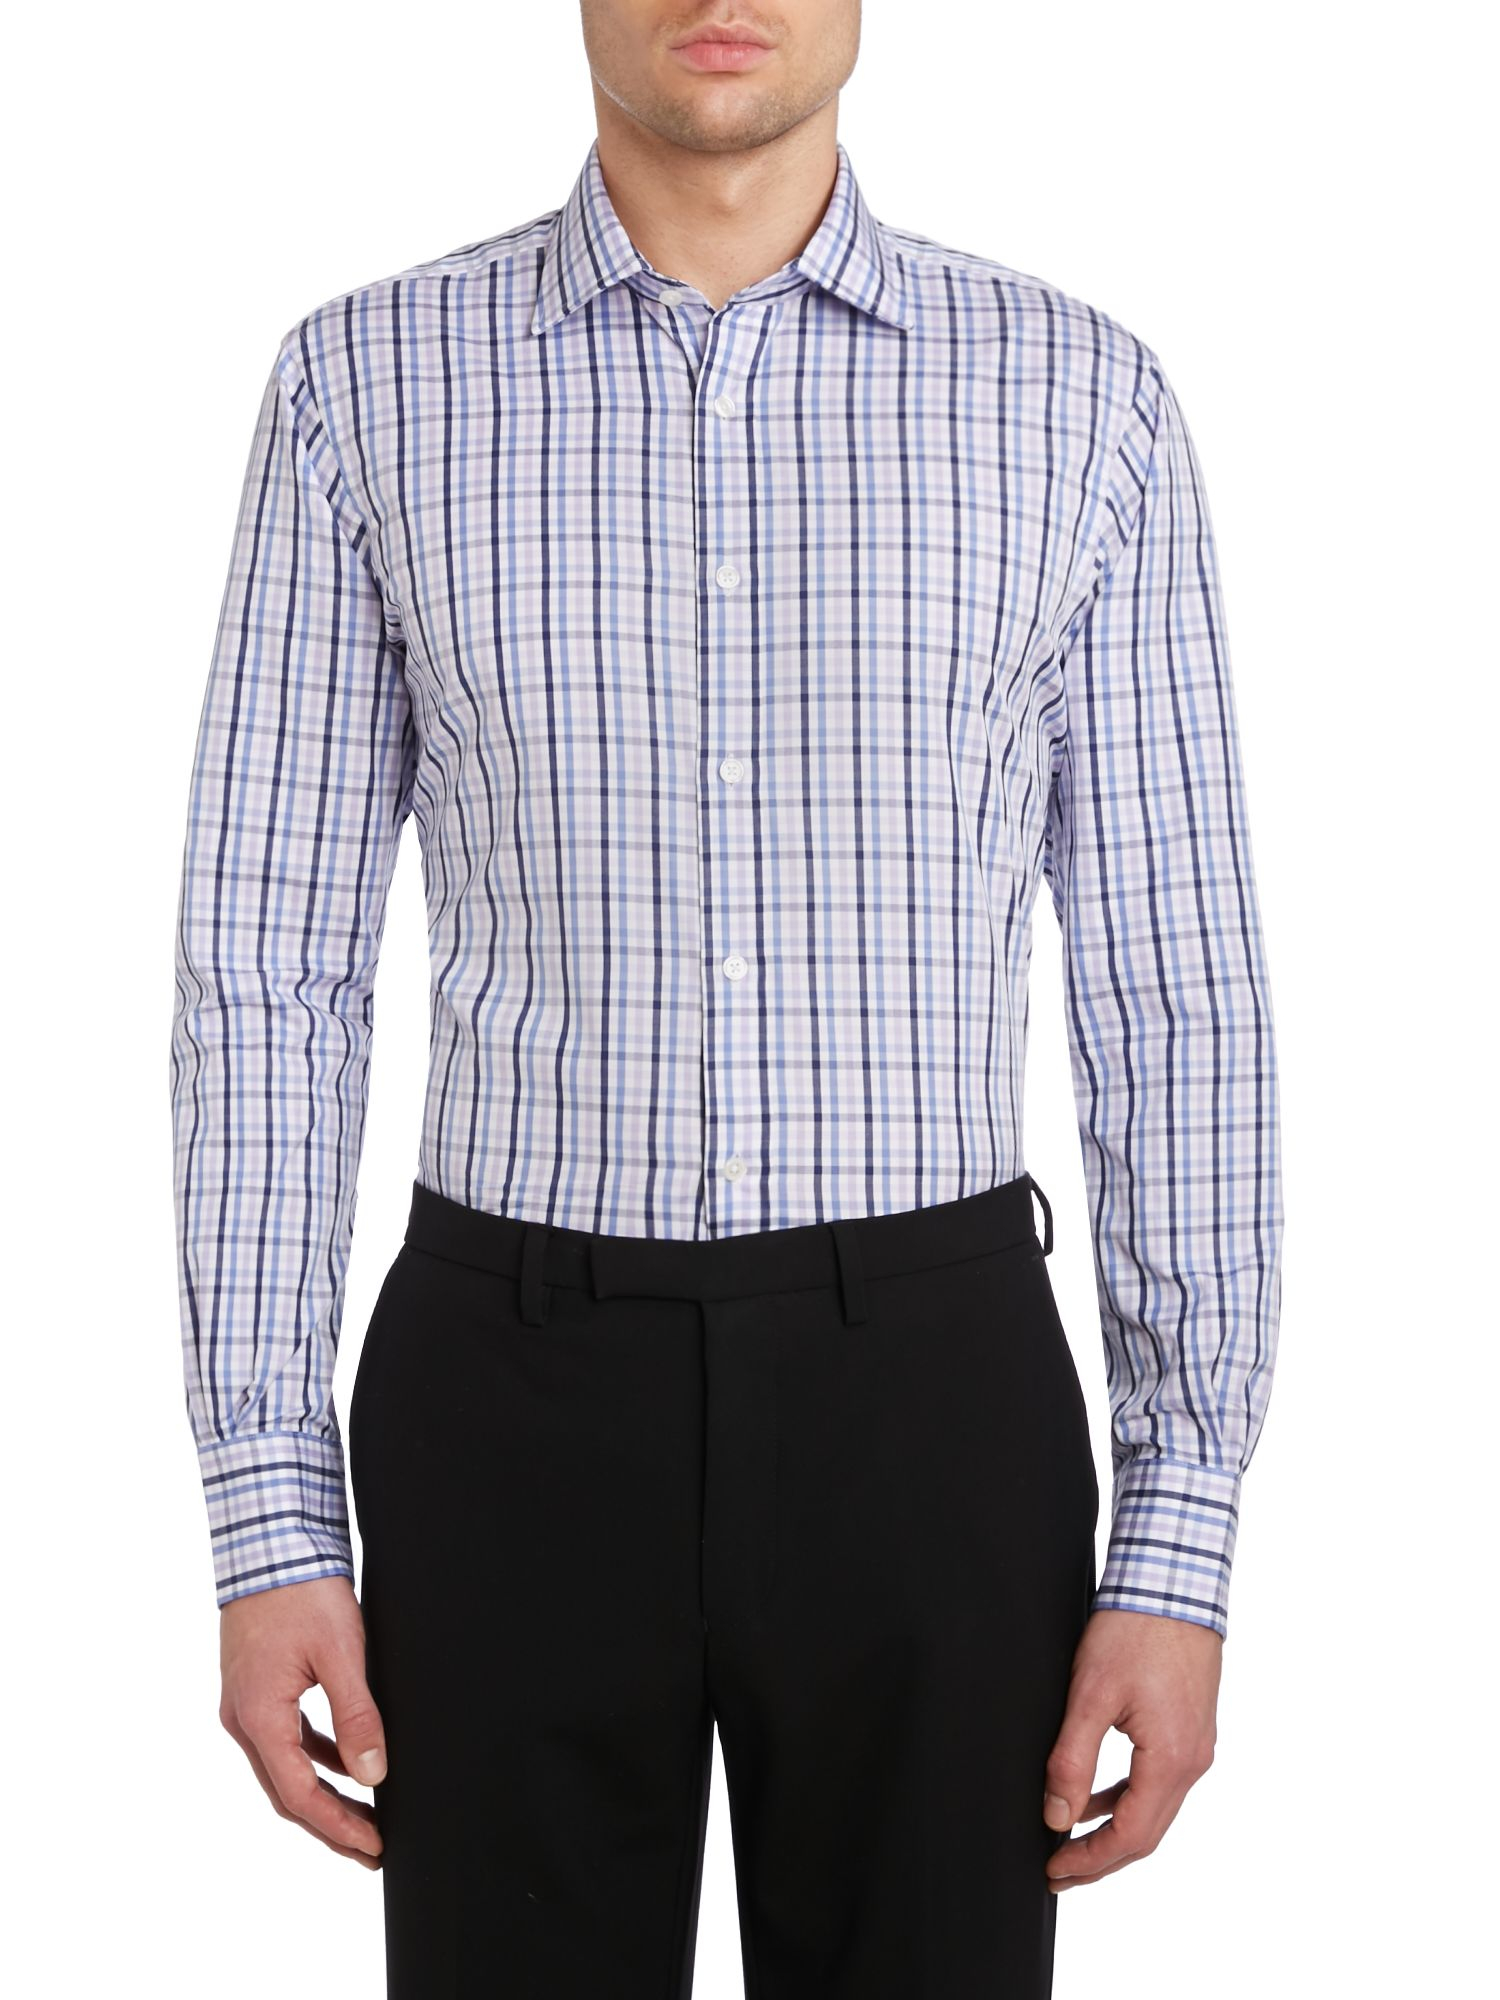 Tm Lewin Gingham Check Classic Fit Long Sleeve Shirt In